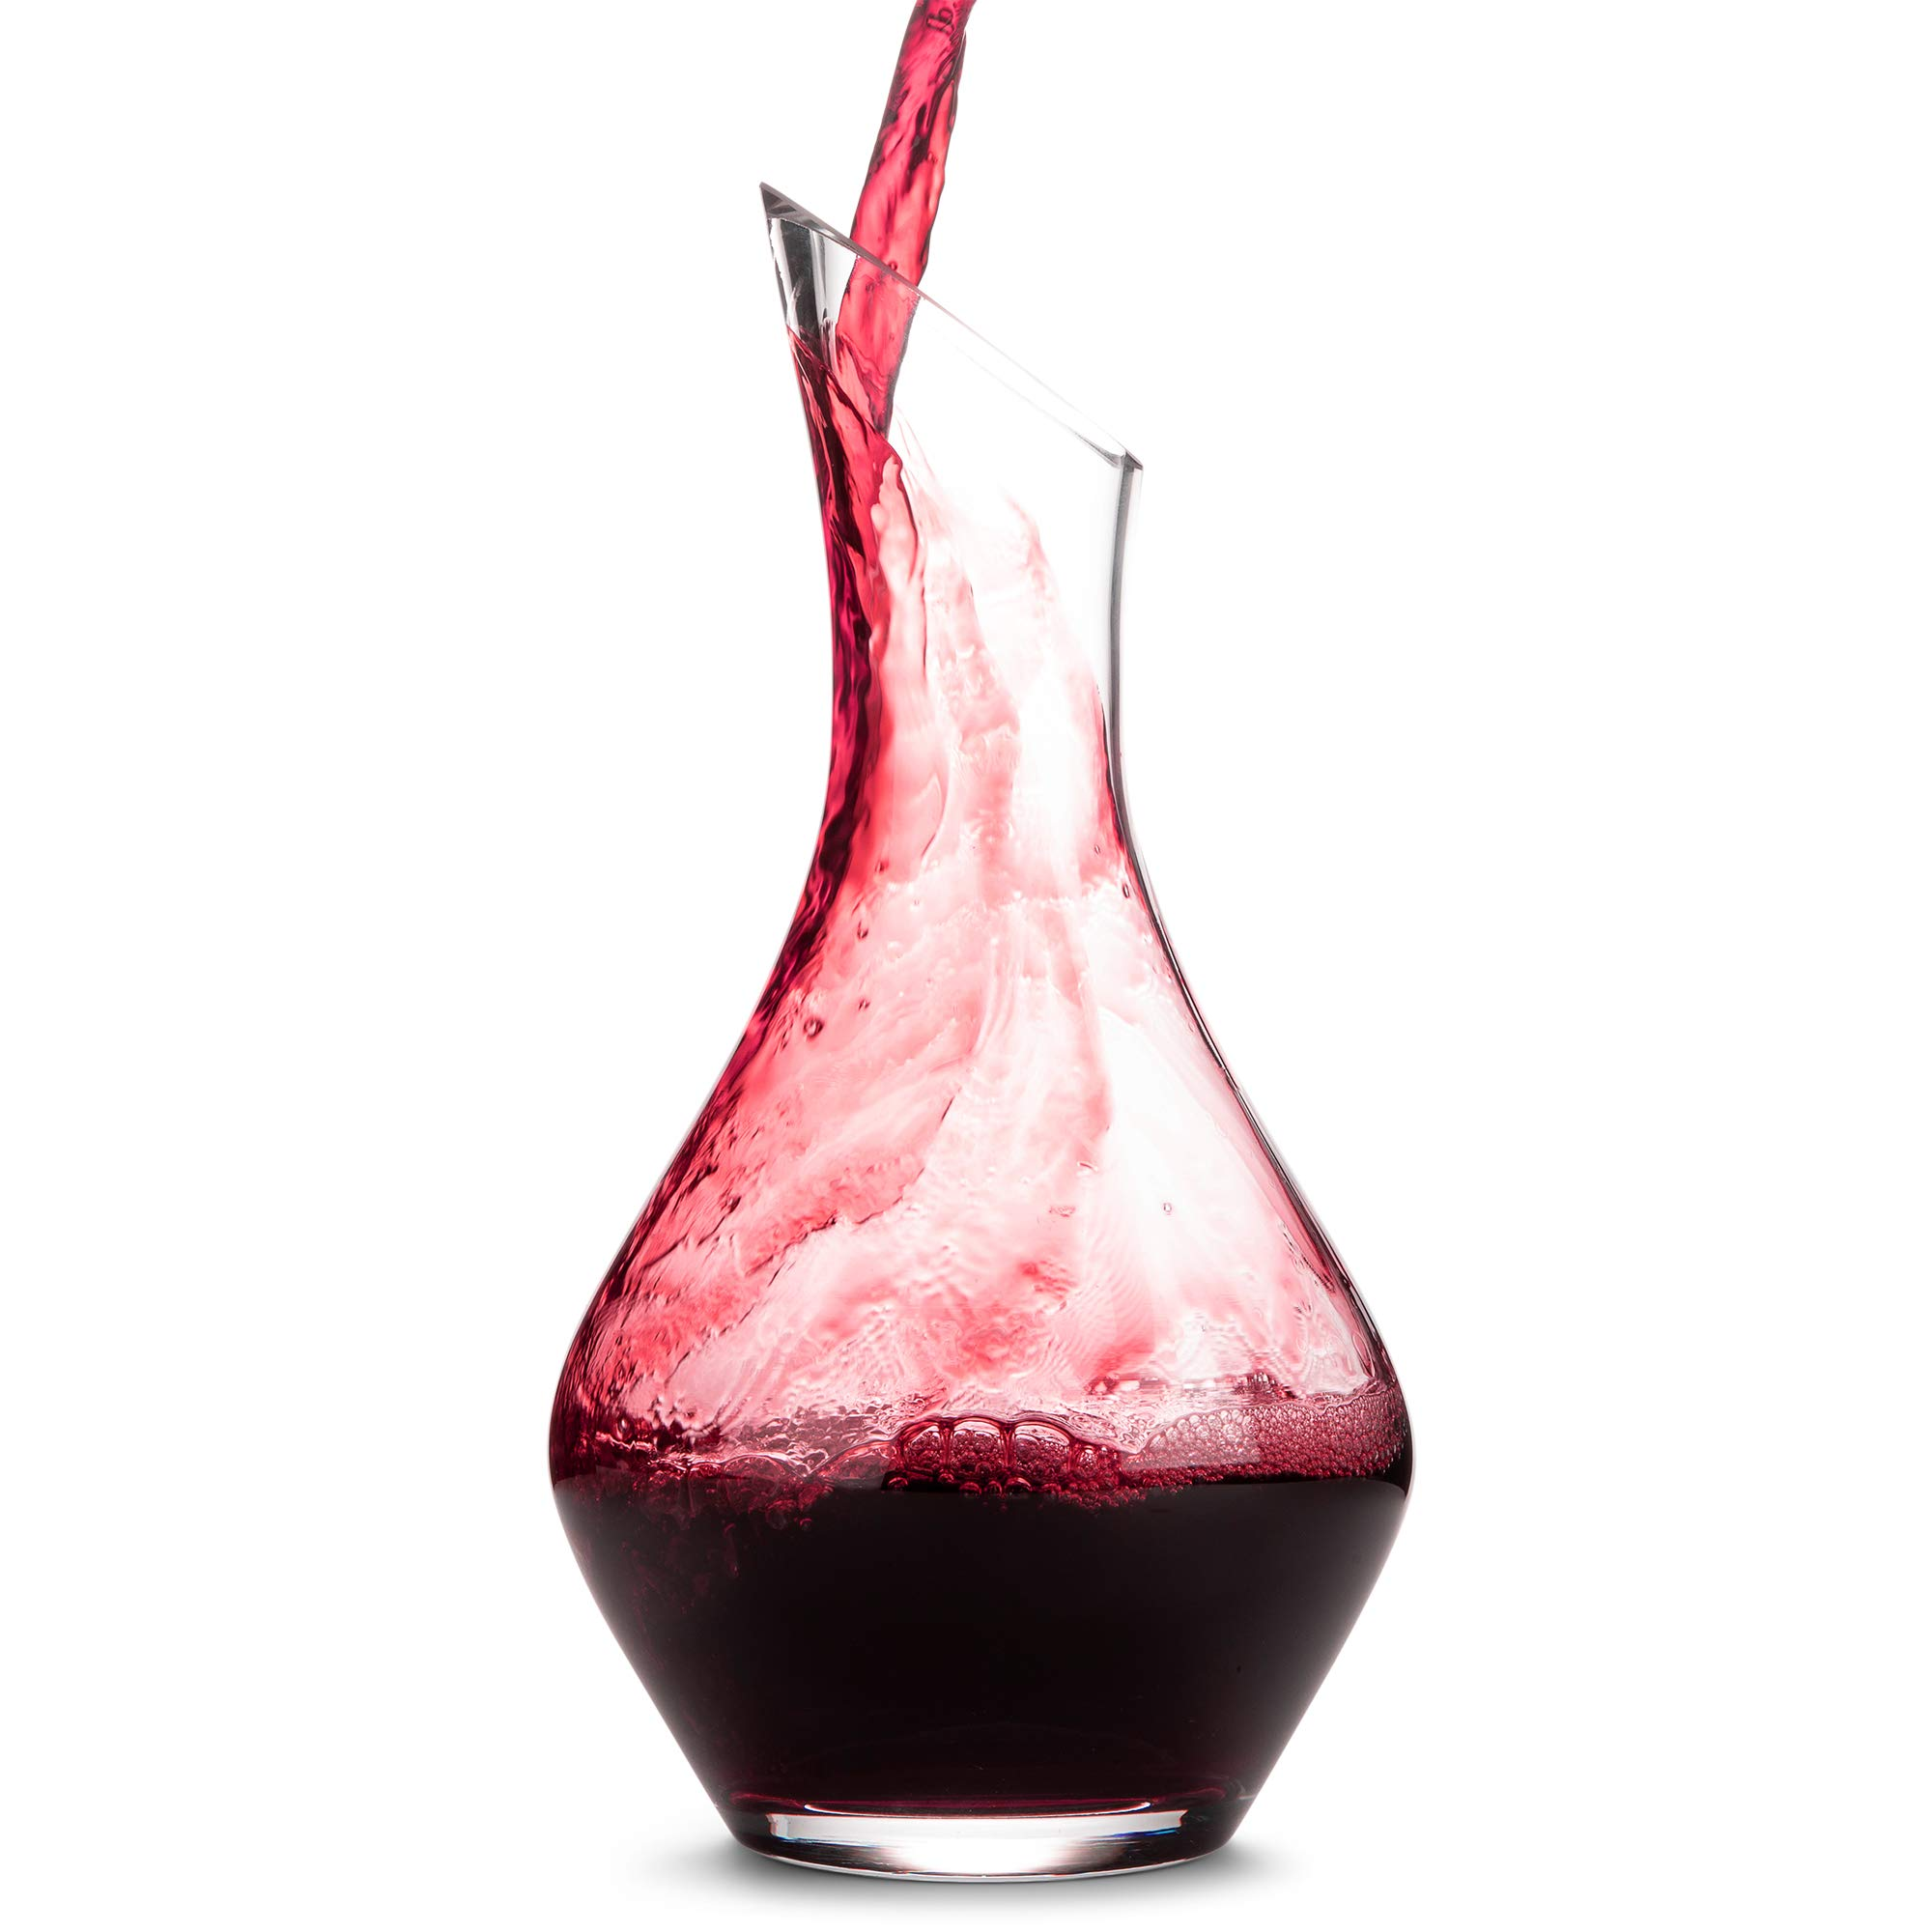 DIONARI Moderno Wine Decanter - 100% Lead-Free, Hand-Crafted Glass Decanter for Red Wine Aeration - Premium, Luxurious Aerator Carafe Gift Set for Wine Lovers - Elegant Wine and Drinking Accessories